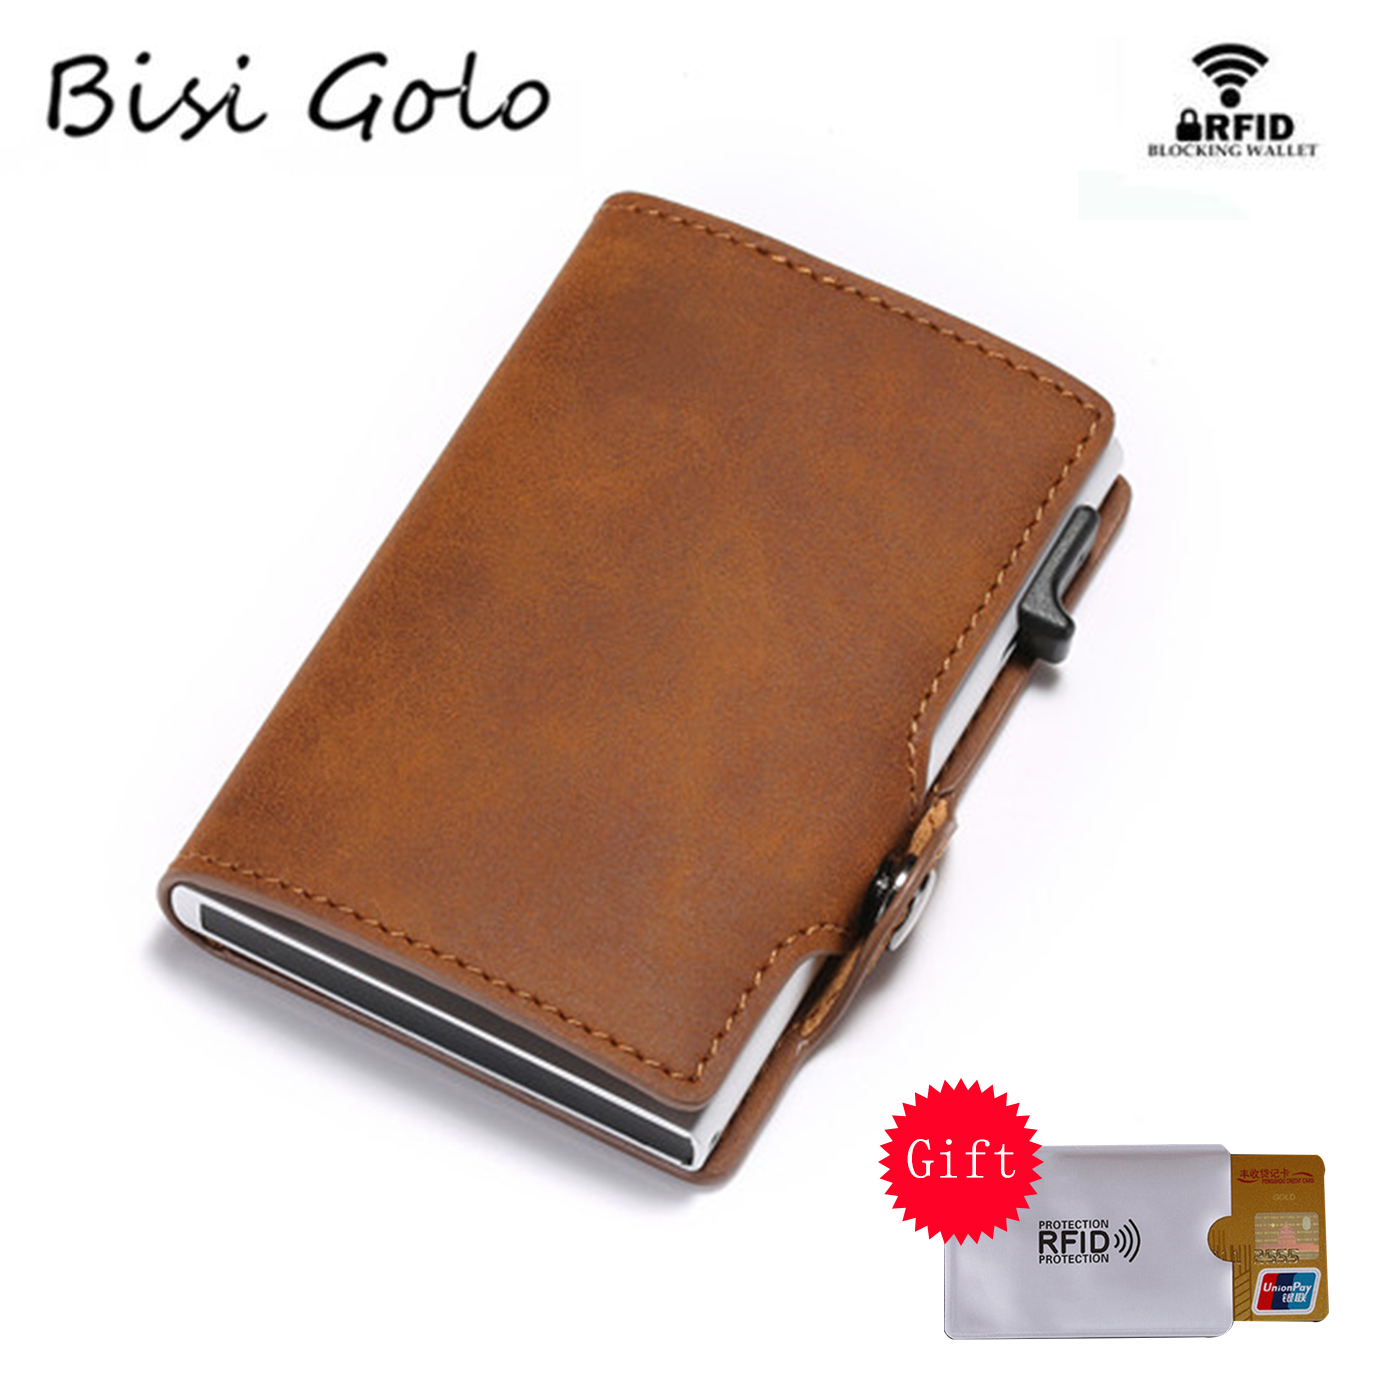 BISI GORO Fashion Wallet 2020 New Vintage Card Holder RFID Slim Suitcase Business Luxury Card Case Anti-theft Card Wholesale